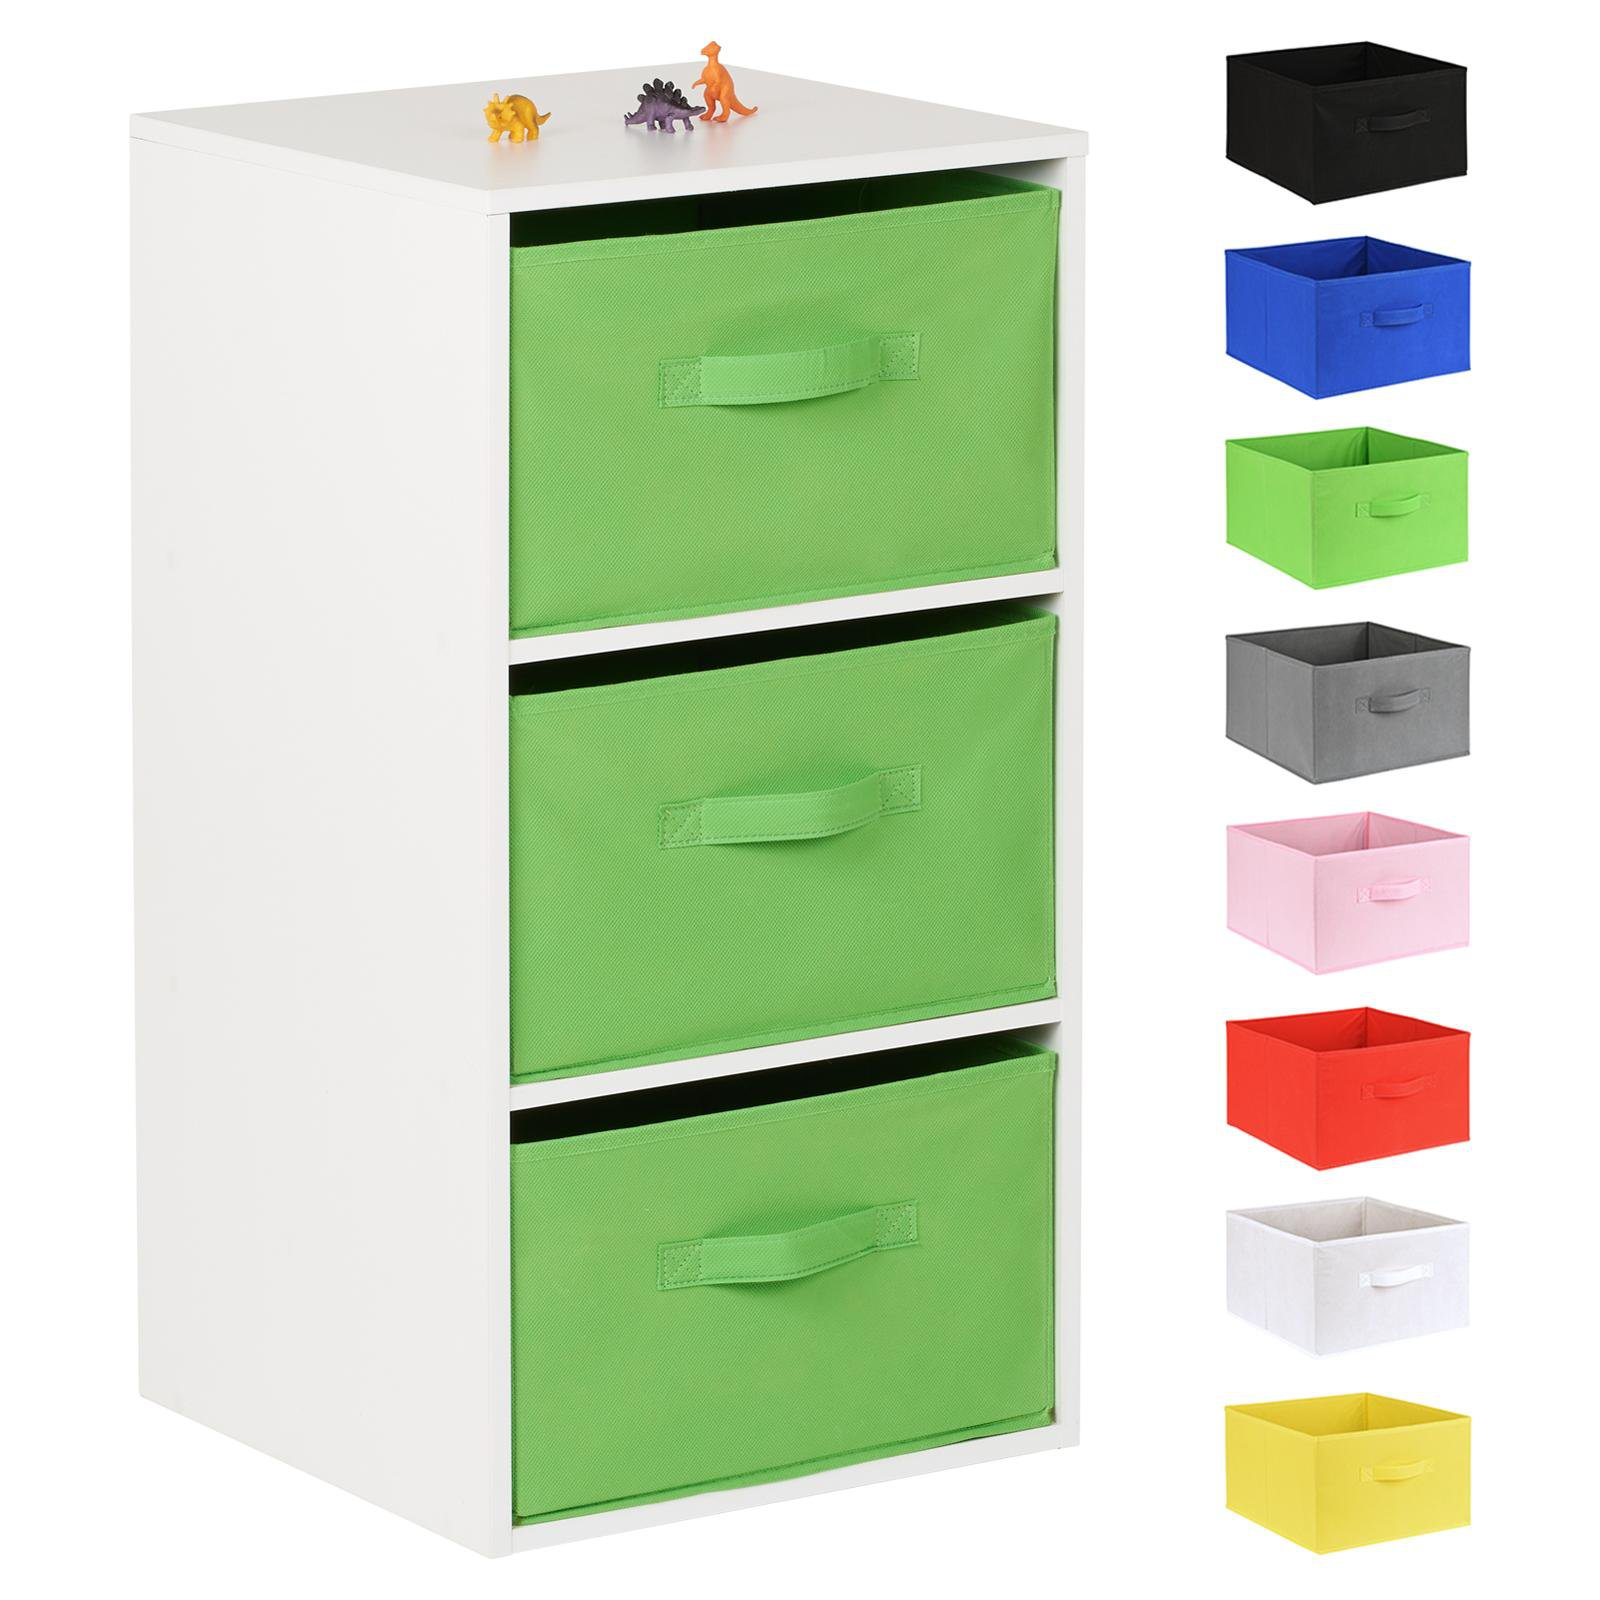 image-Hartleys White 3 Cube Kids Storage Unit & 3 Handled Box Drawers - Green